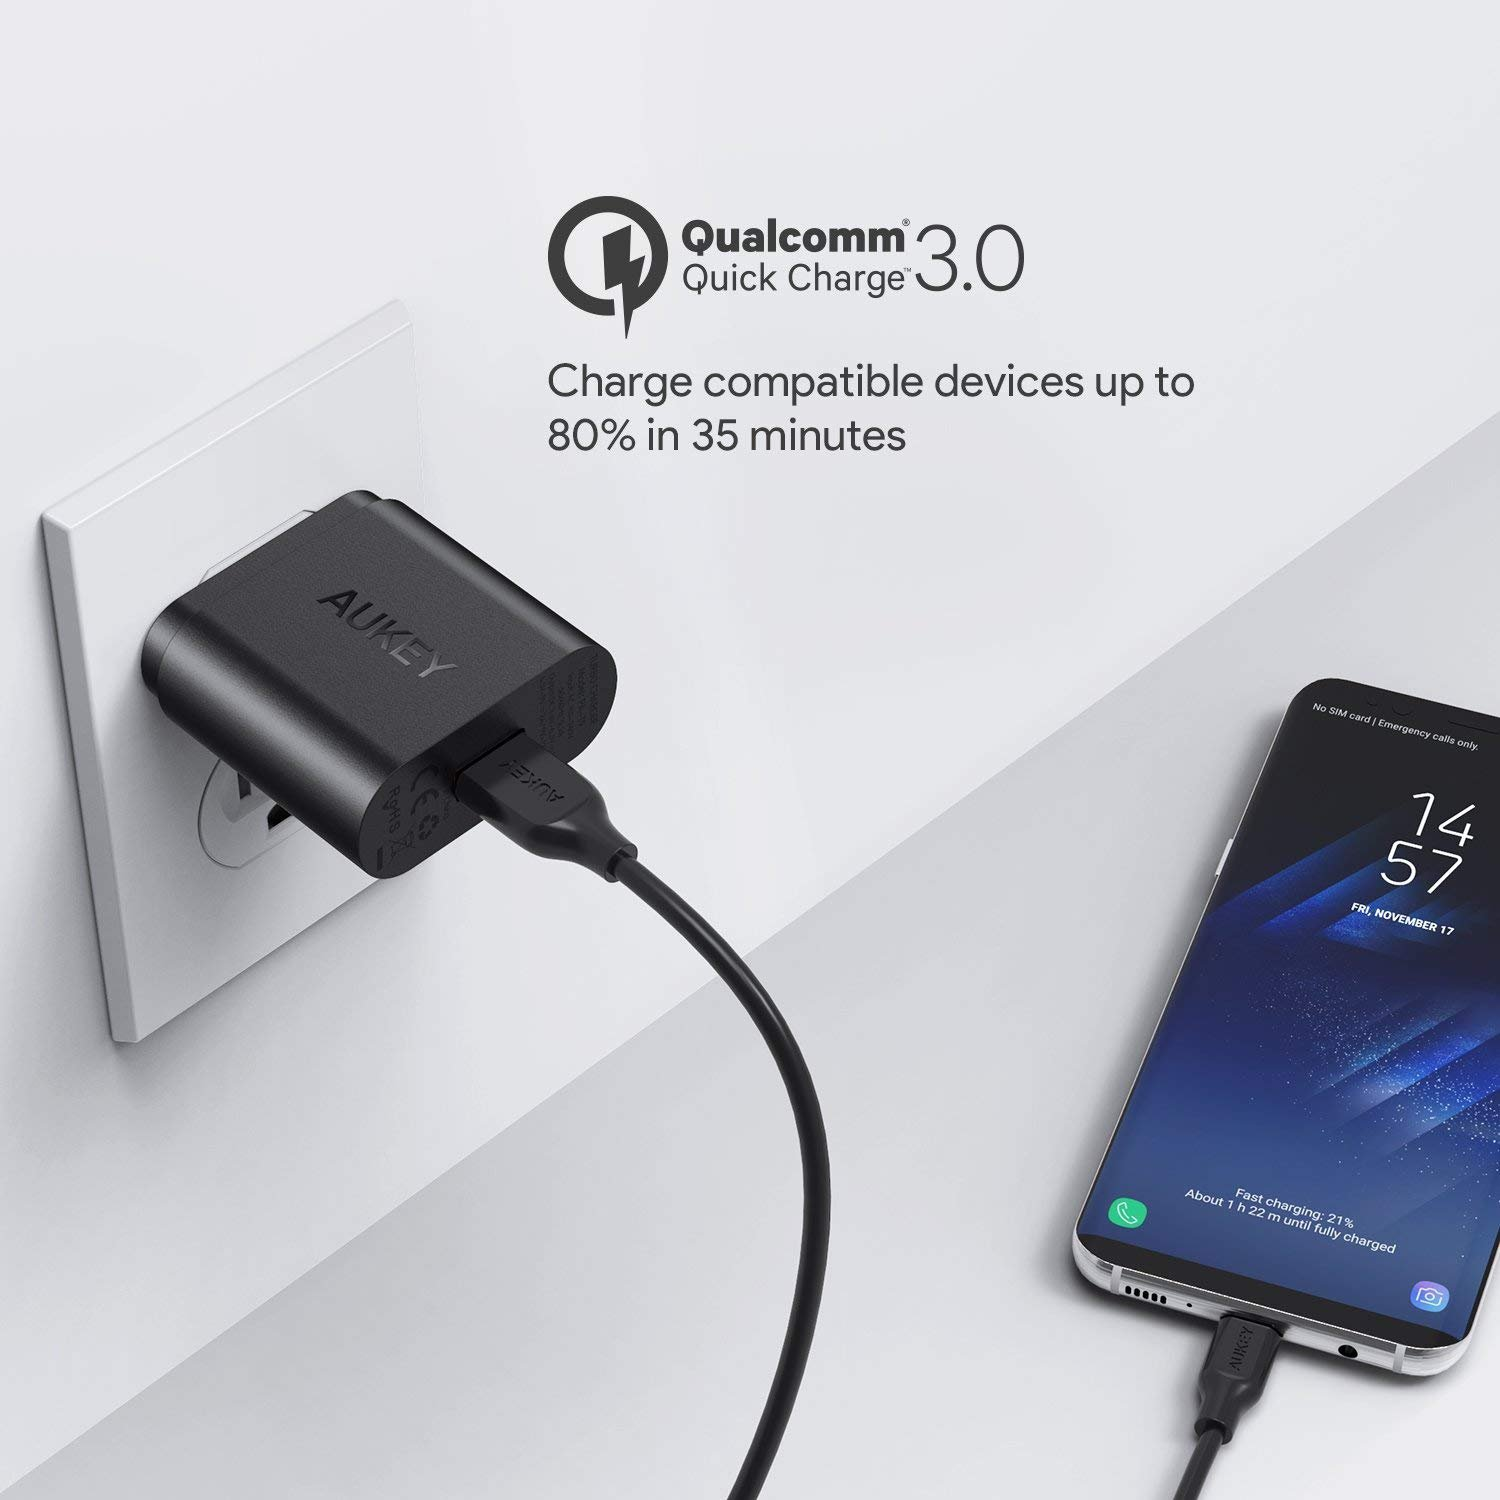 AUKEY Quick Charge 3.0 18W USB Wall Charger, Compatible Samsung Galaxy Note8 / S8 / S8+, LG G6 / V30, HTC 10 and More | Qualcomm Certified